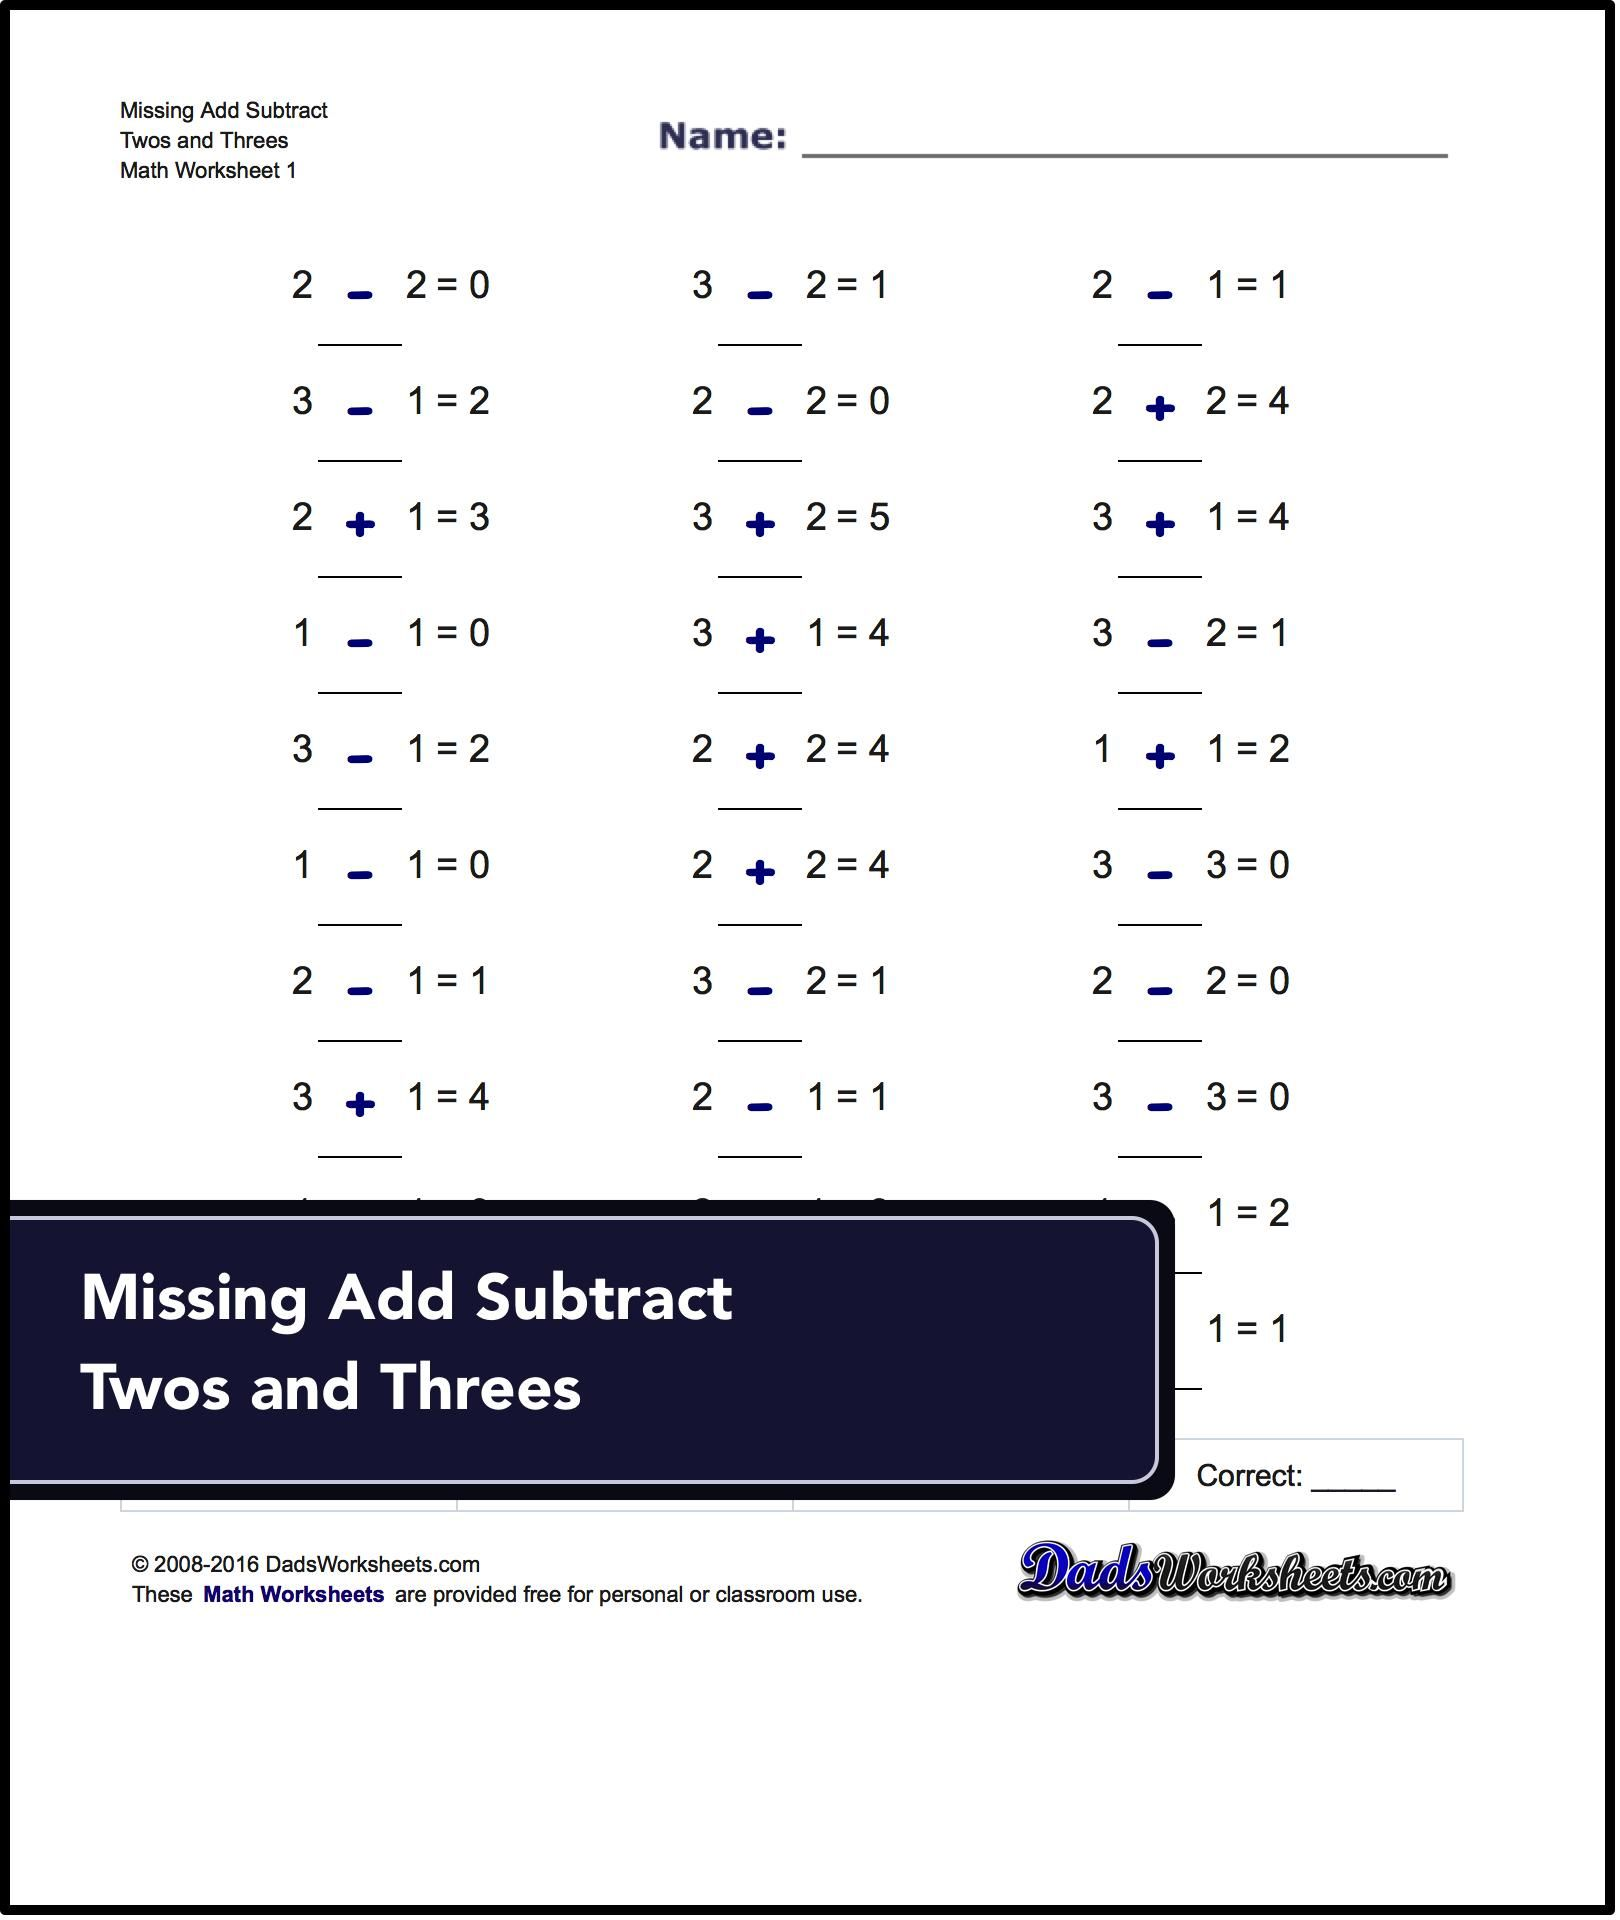 Links to free math worksheets for missing operations problems visit links to free math worksheets for missing operations problems visit dadsworksheets httpdadsworksheetsworksheetsmissing operations ibookread PDF